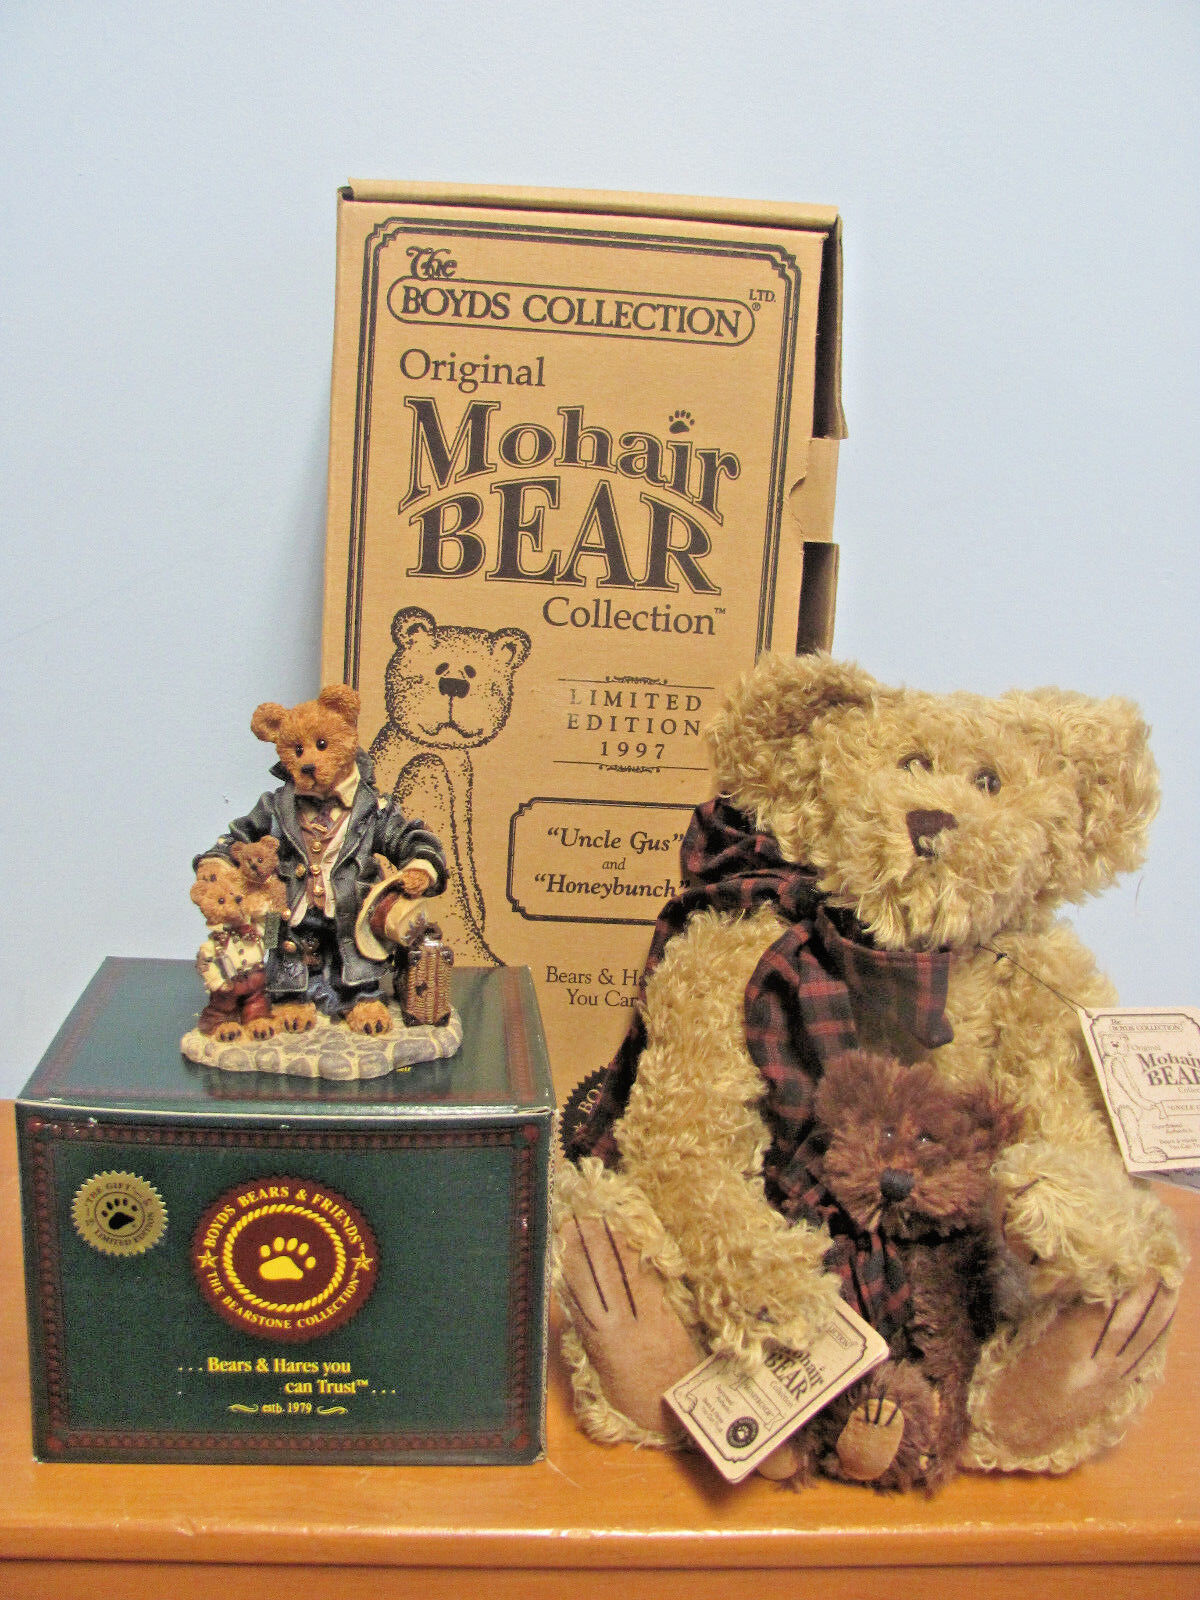 NIB BOYDS BEARS LIMITED EDITION 1997 UNCLE GUS AND HONEYBUNCH ORIGINAL MOHAIR